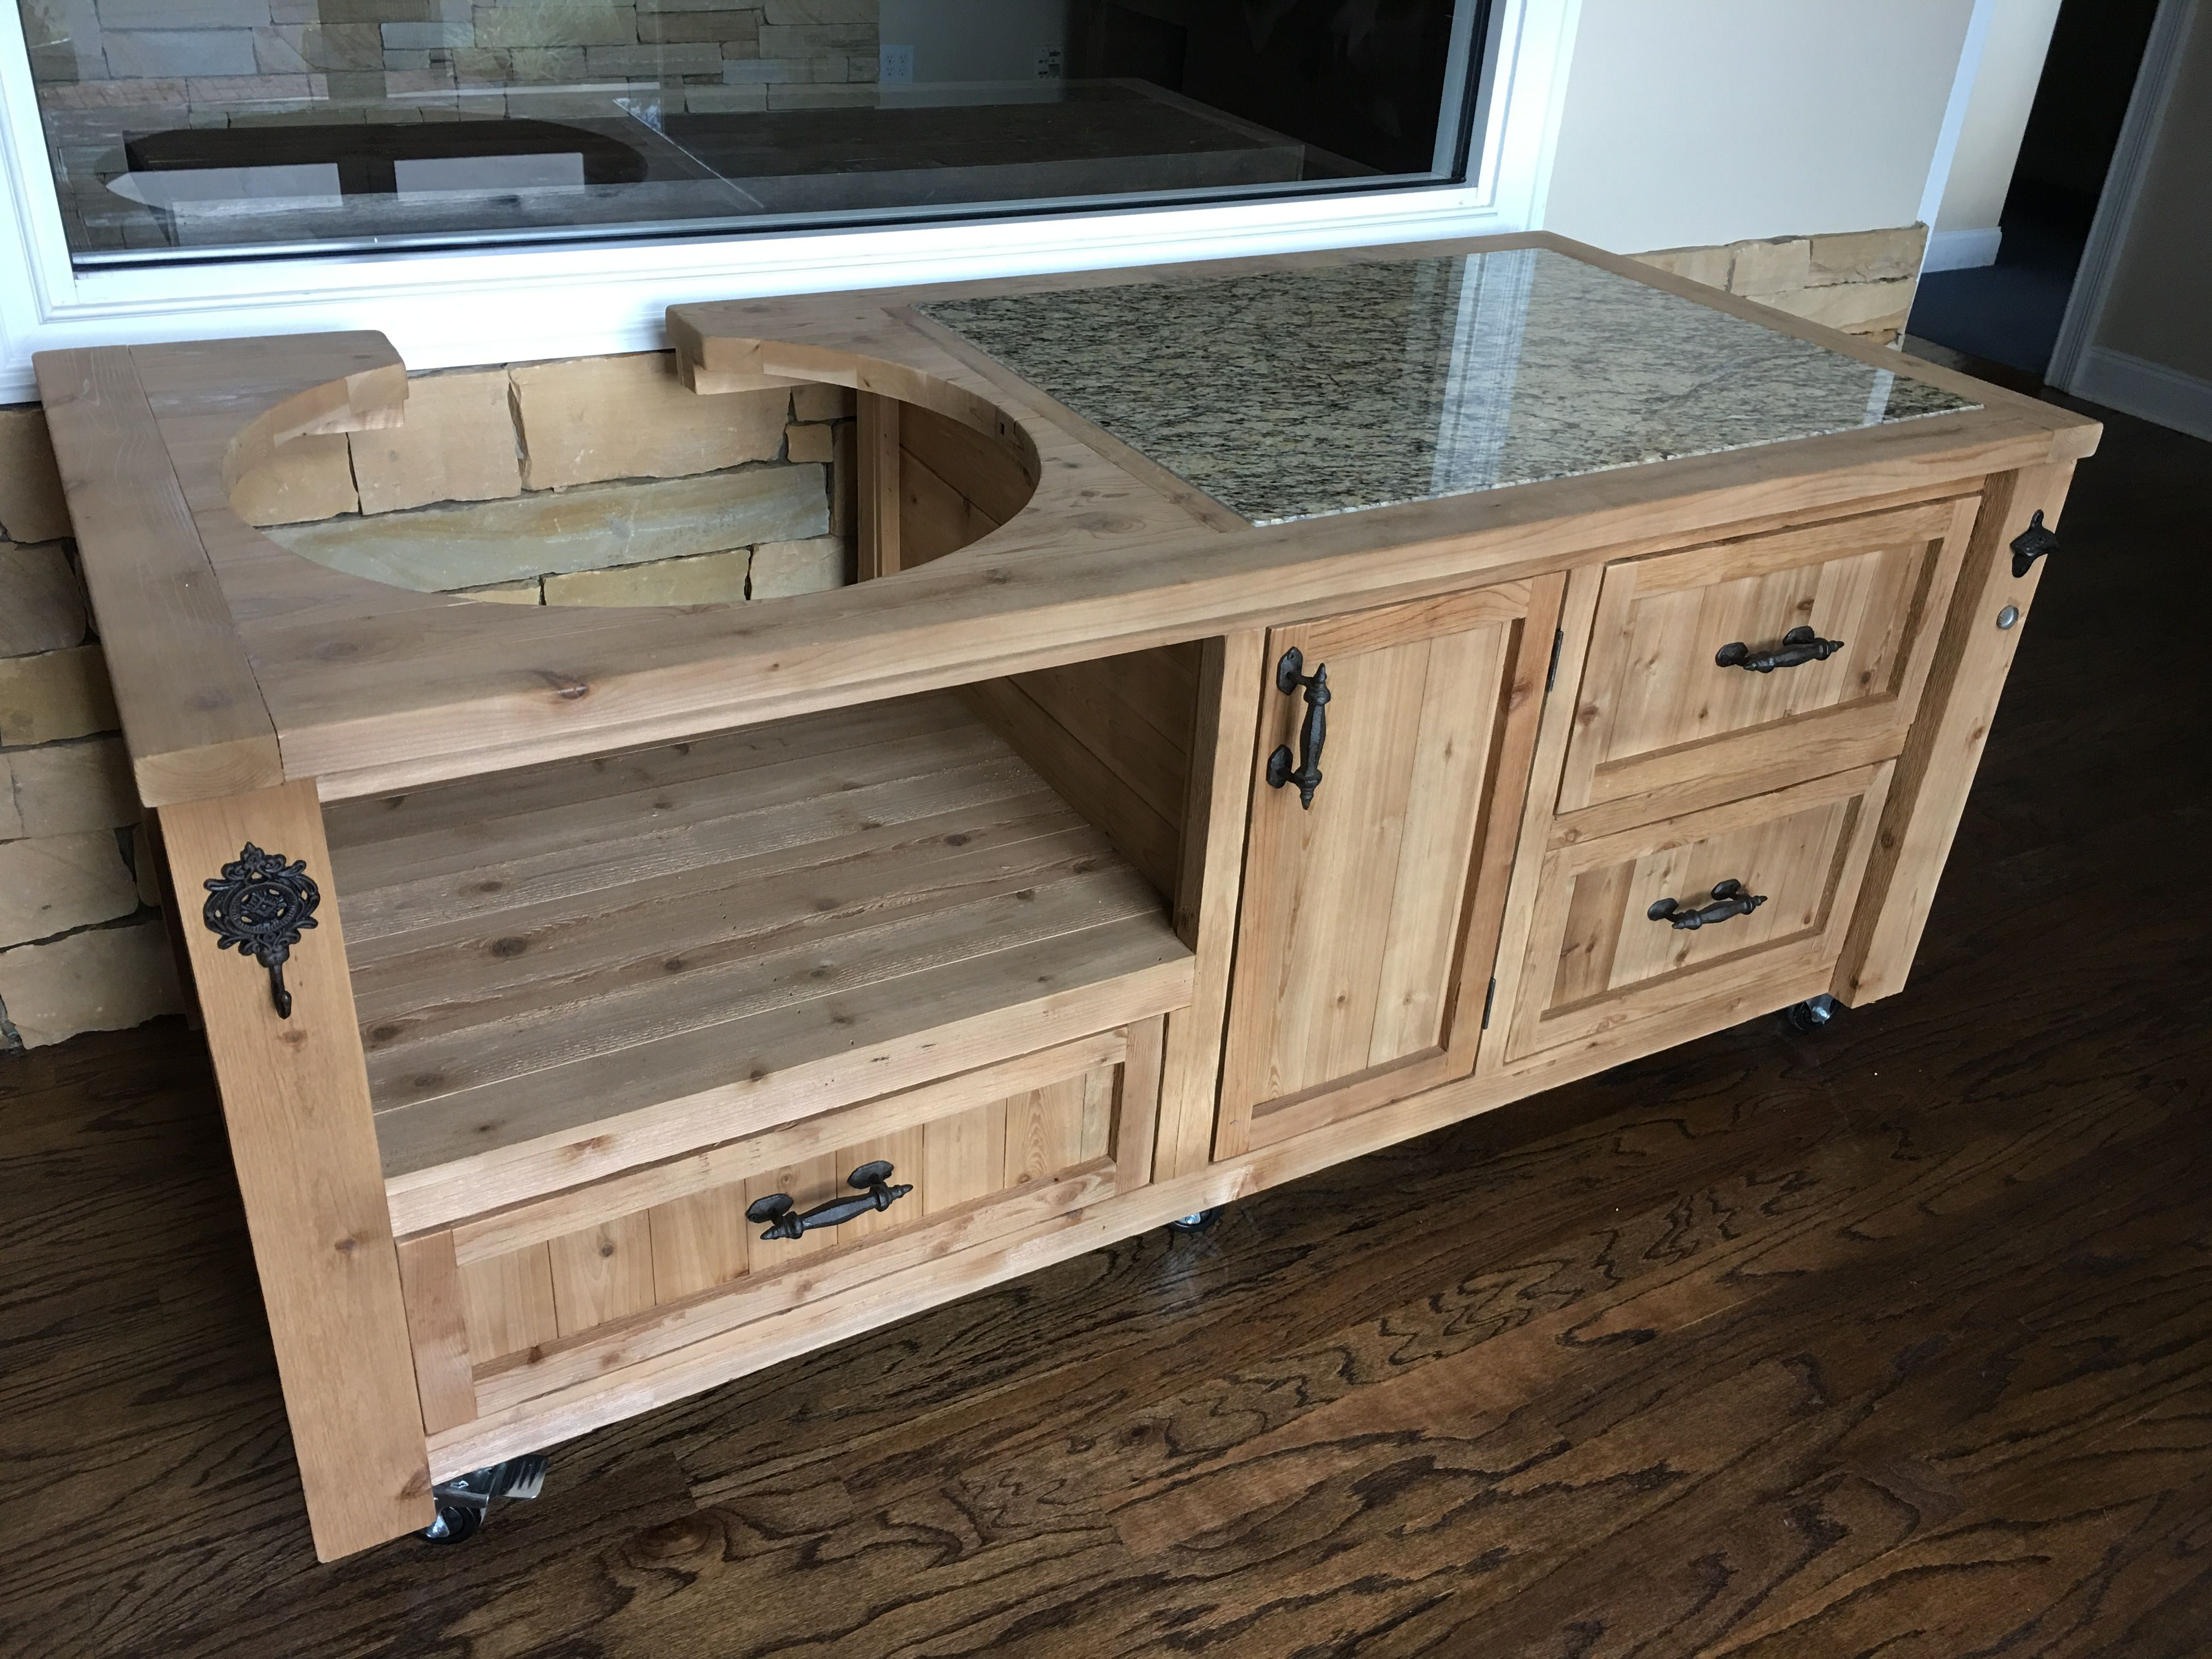 Kamado Joe Big Joe Grill Cabinet With Notch Out For Air